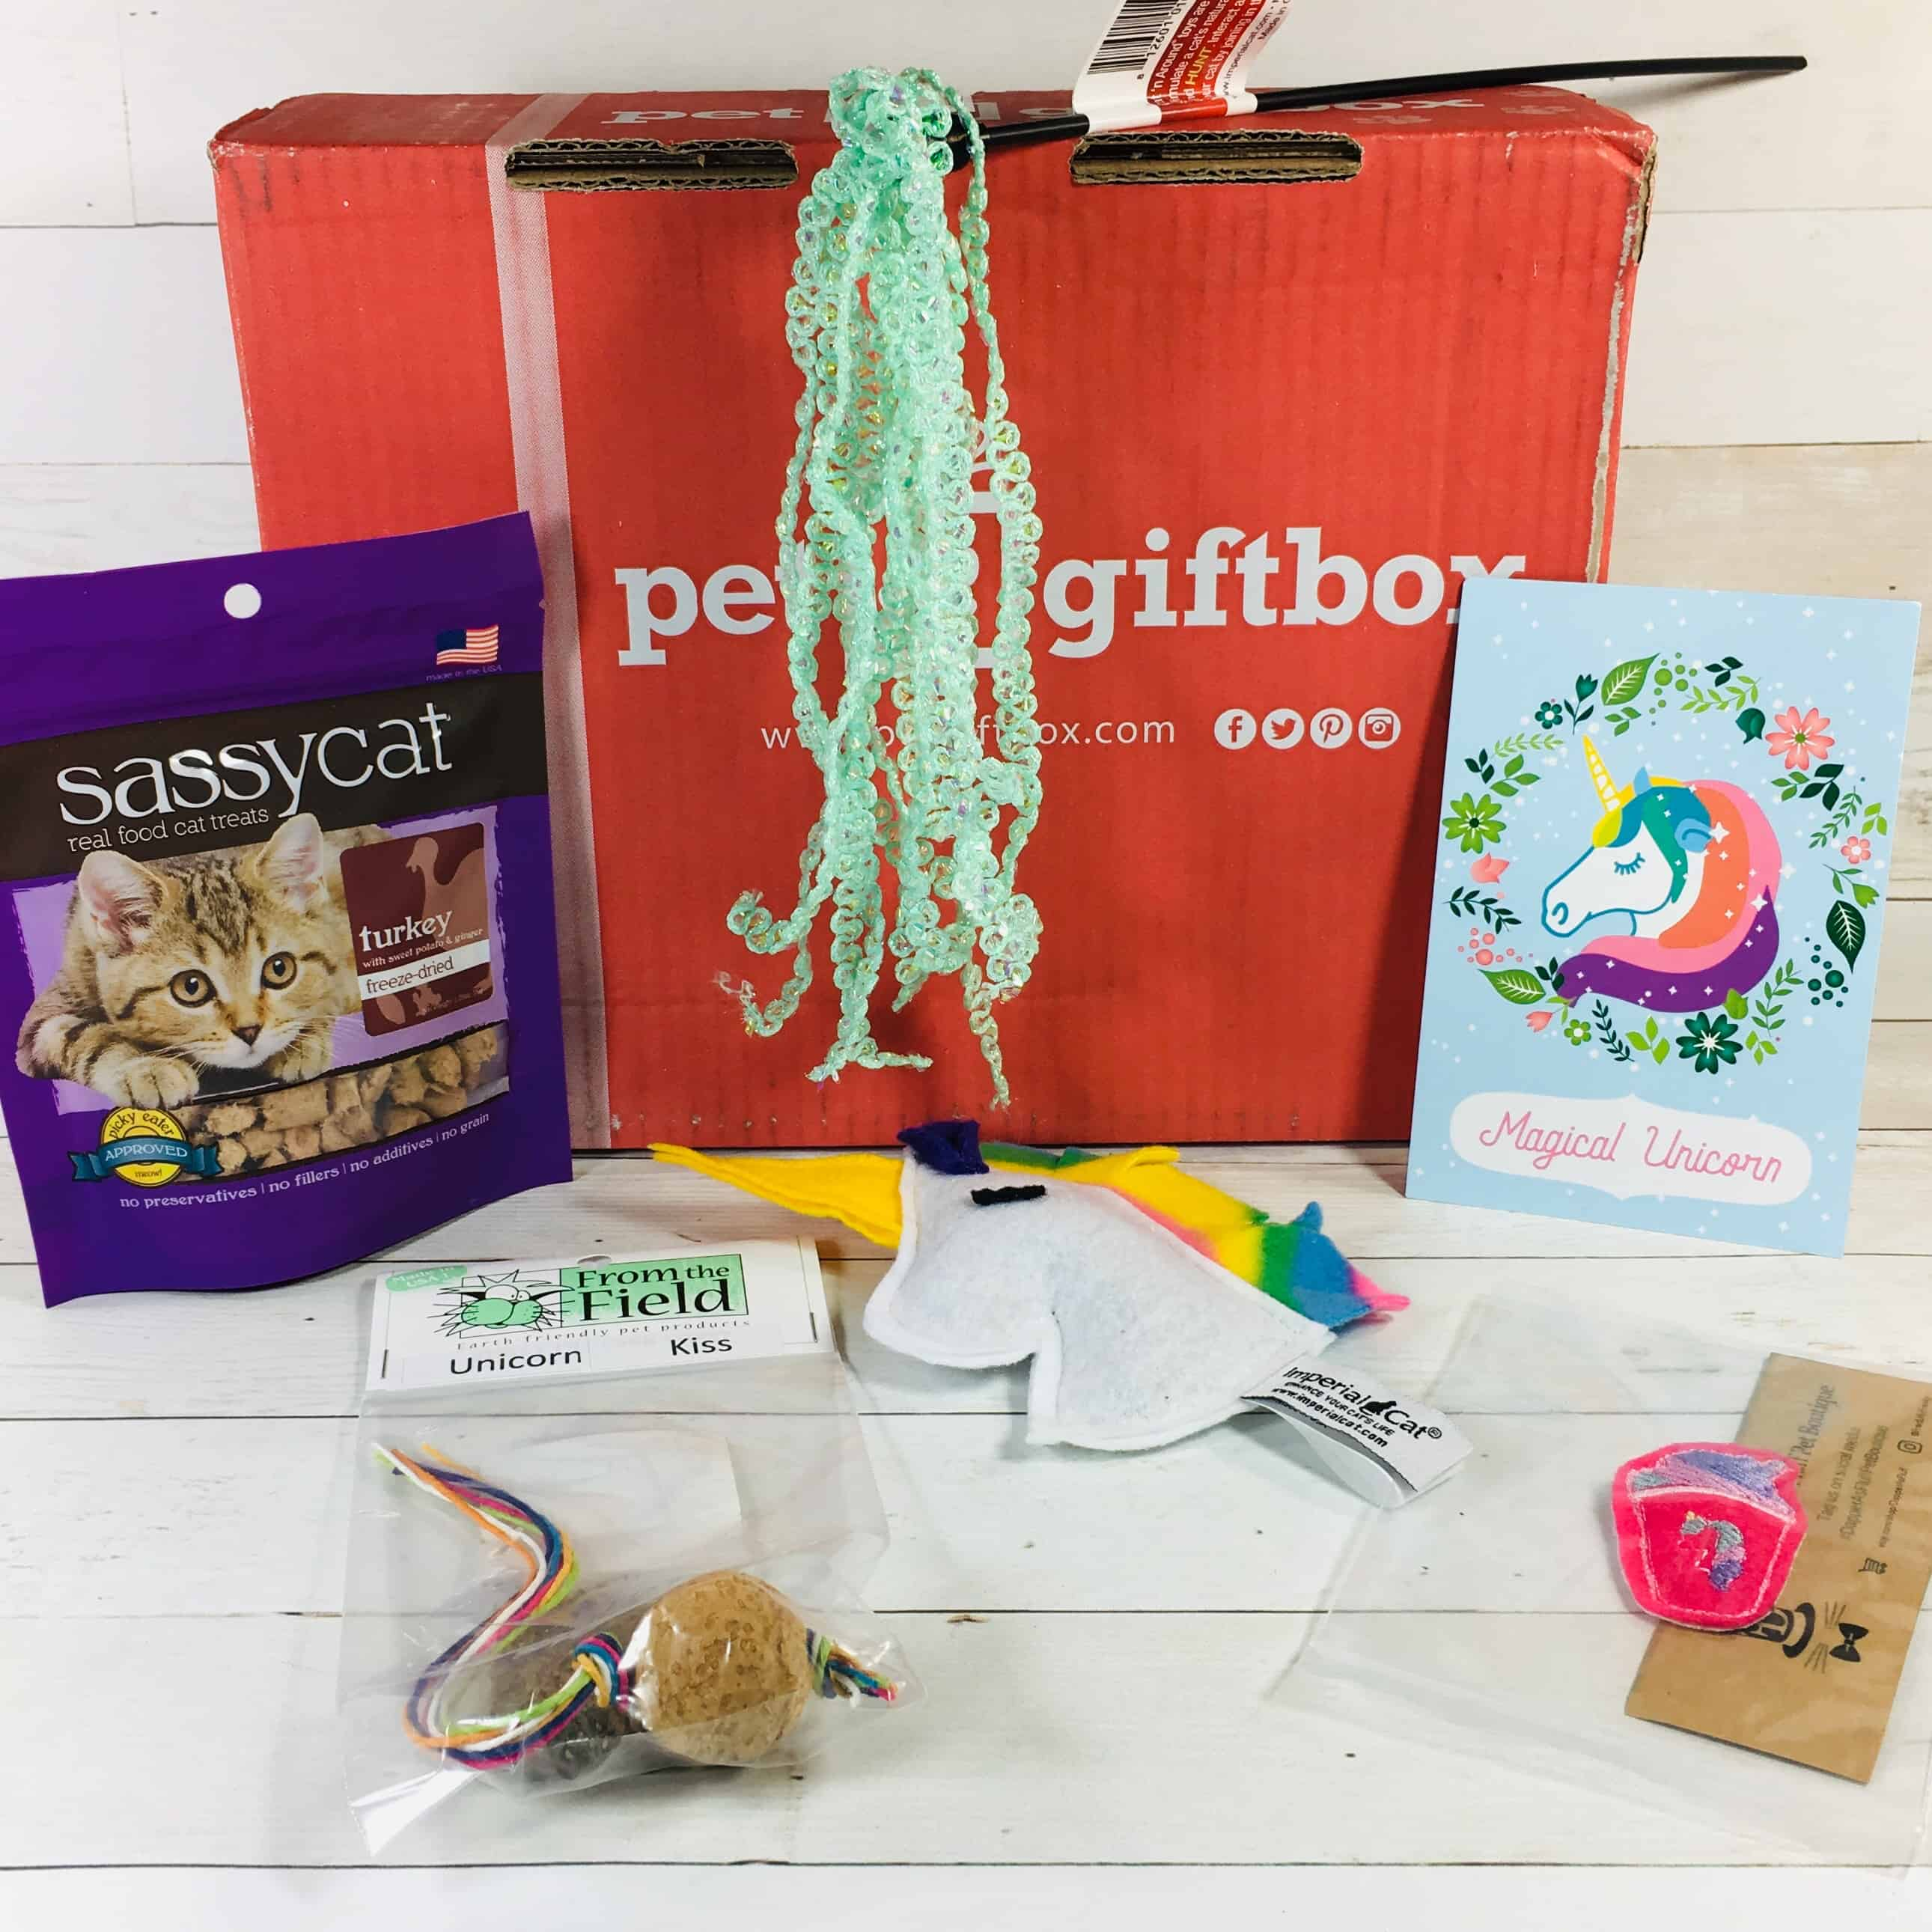 PetGiftBox Cat September 2018 Subscription Box Review + 50% Off Coupon